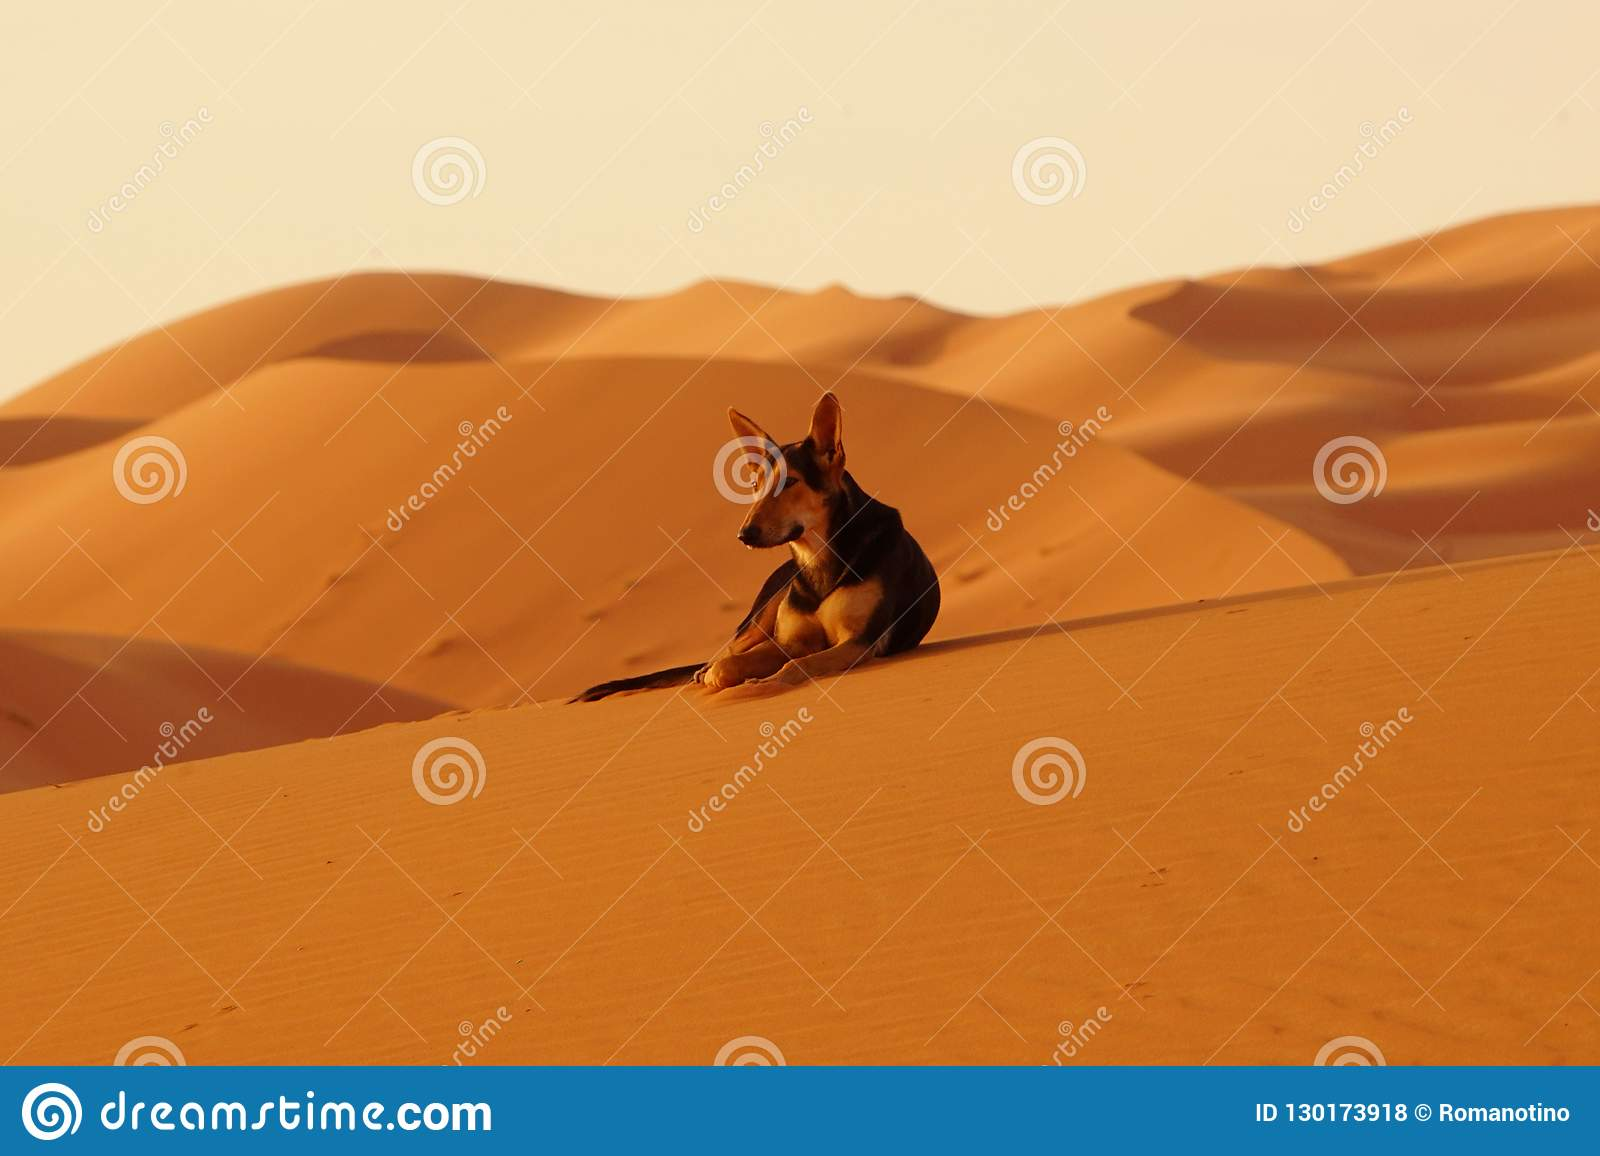 The lone dog in the ERG desert in Morocco